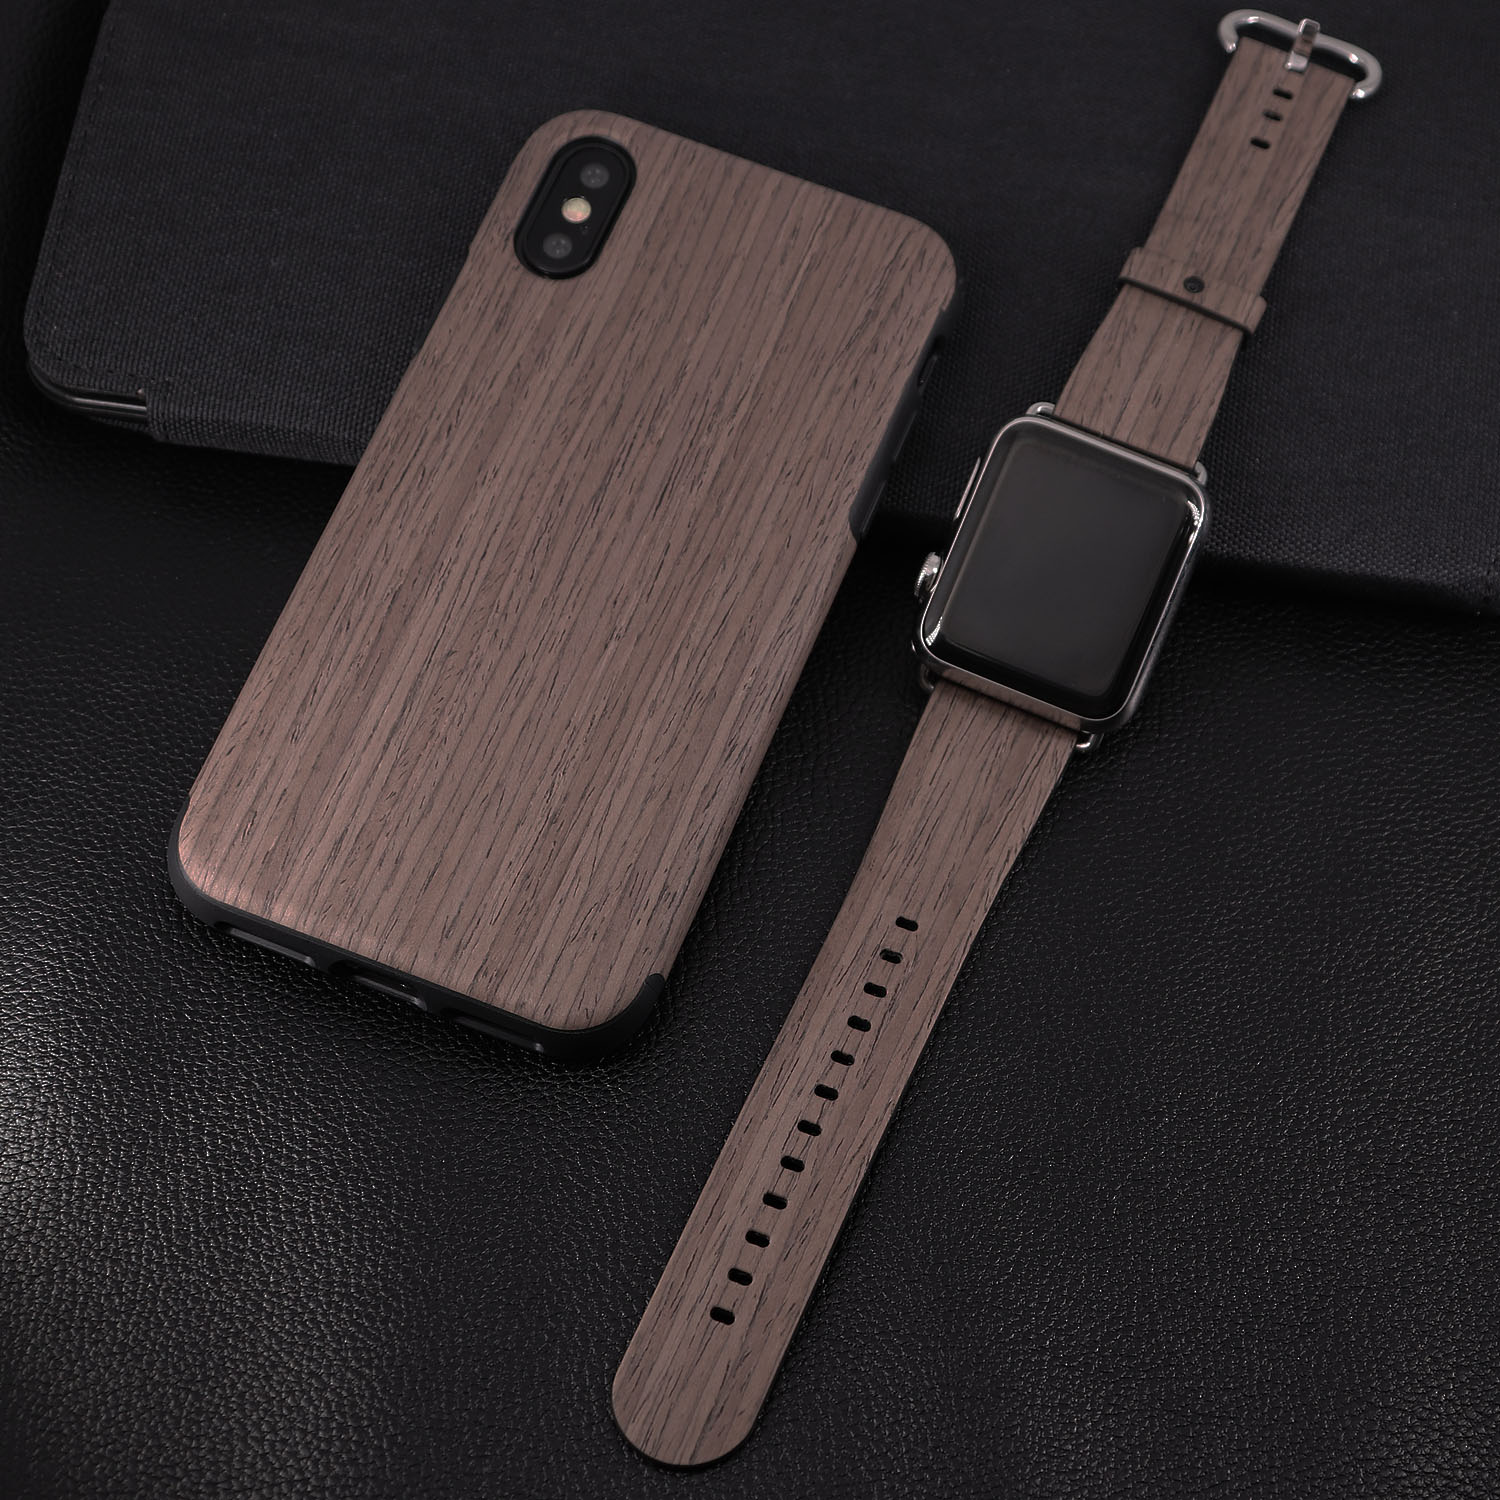 Apple watch band with phone case suit for iphone x